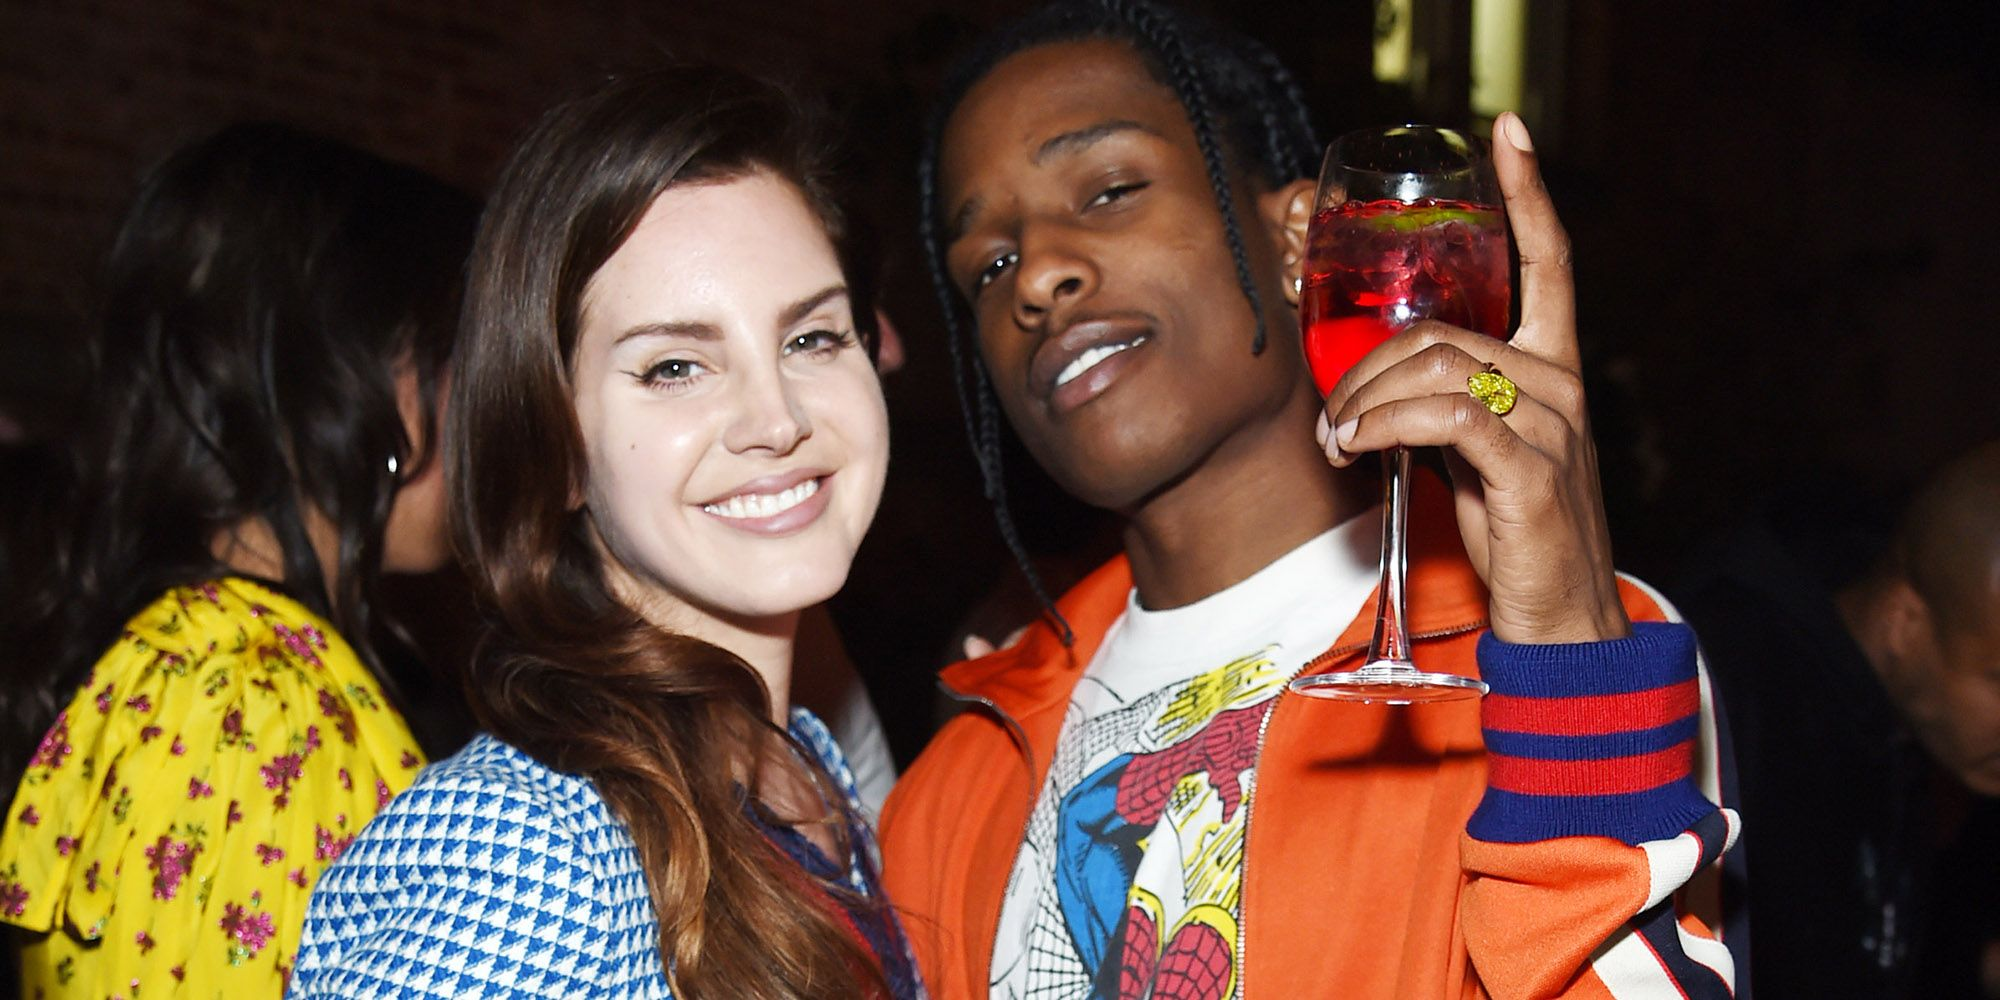 Lana Del Rey And A Ap Rocky Have 2 Songs Together Lana Del Rey And A Ap Rocky Songs